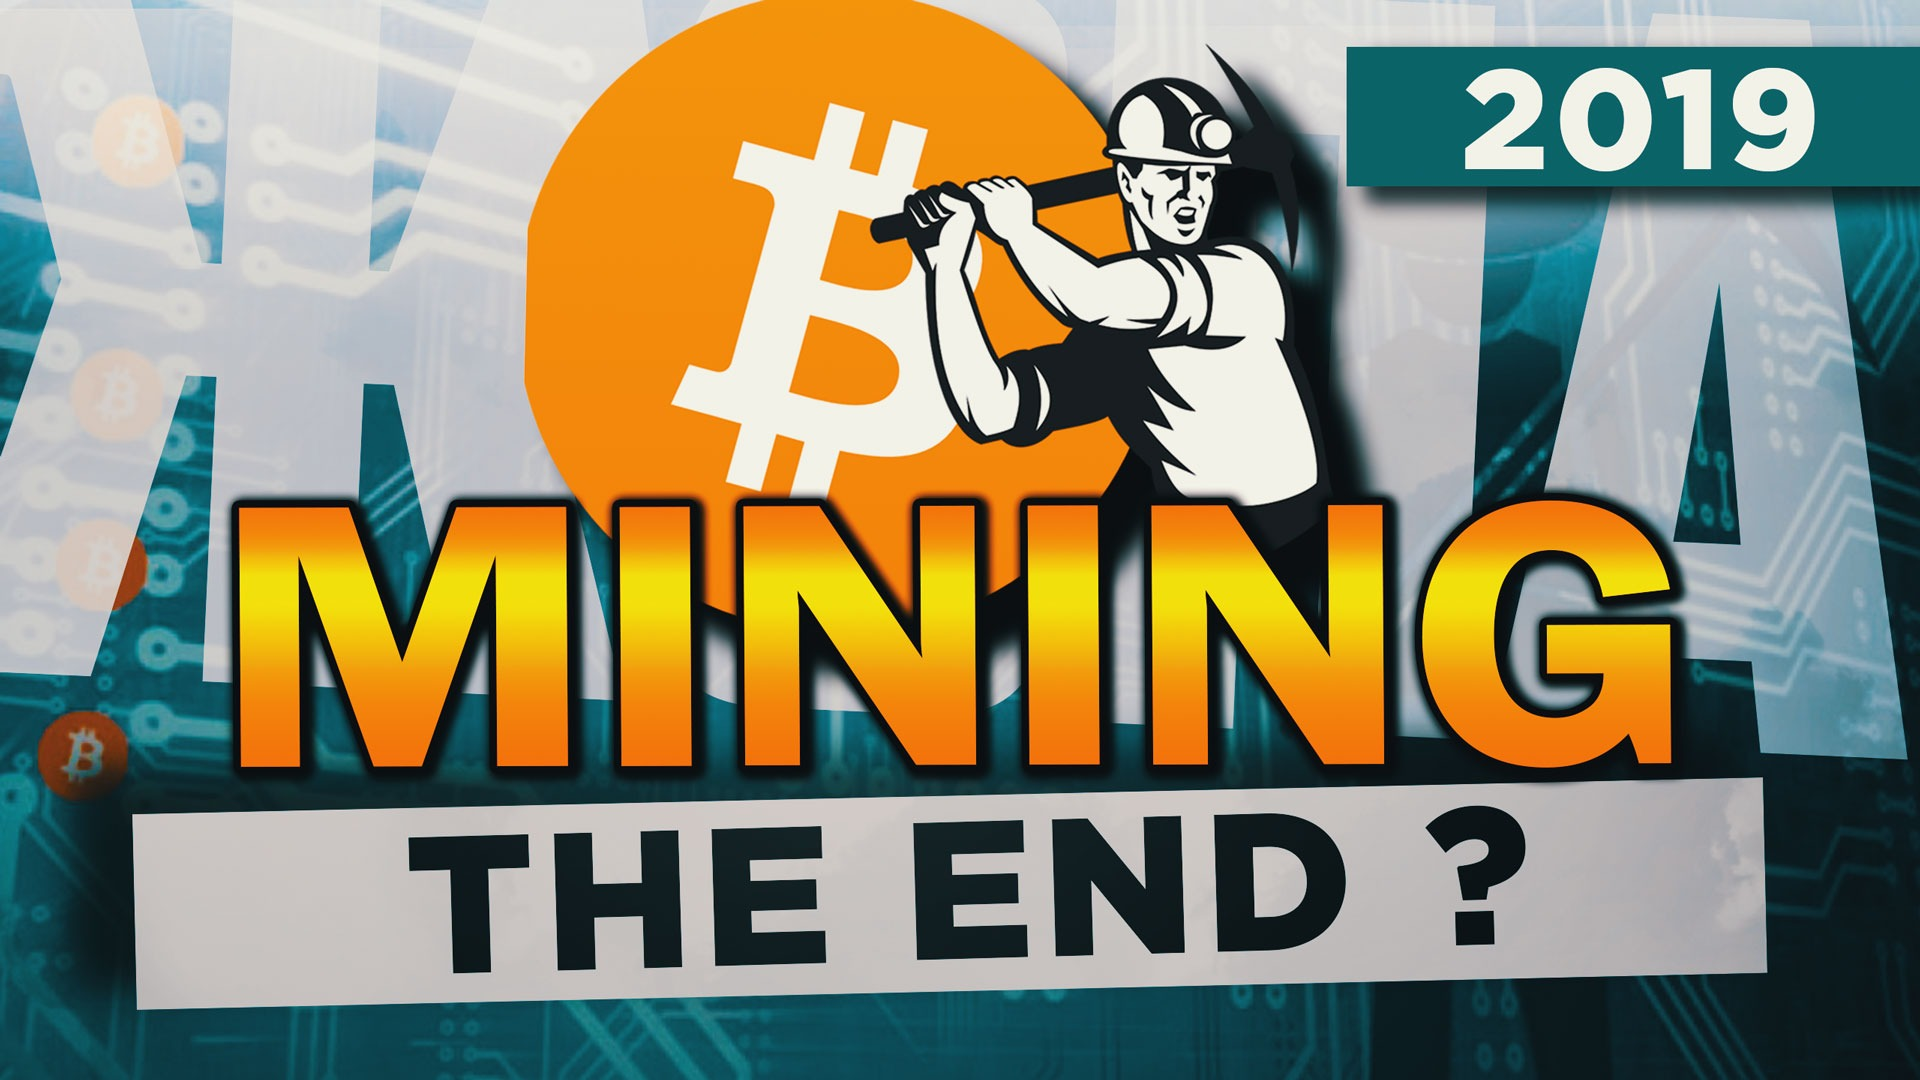 Mining of bitcoin is dead! What's to do next? Stop everything and sell out the farms!